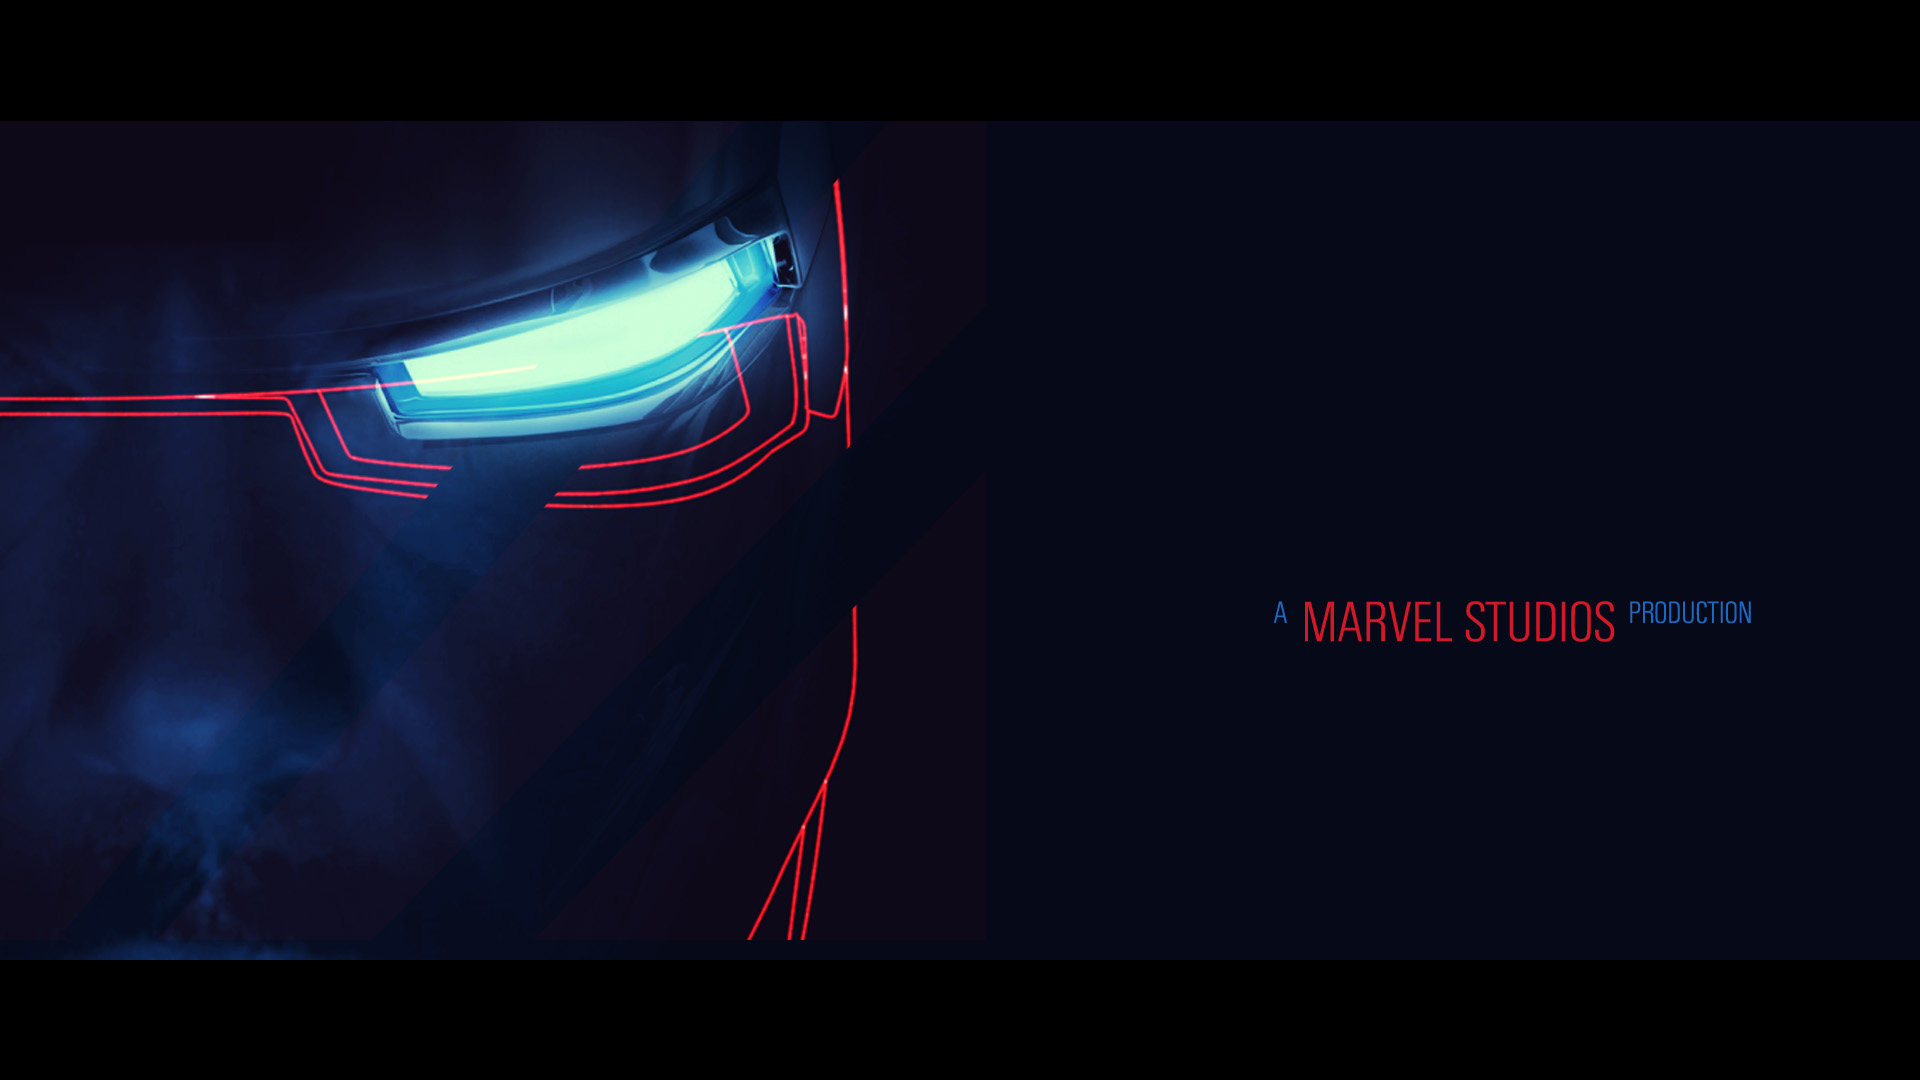 Iron Man Wallpapers Full Hd Desktop Background: Iron Man 3 Full HD Wallpaper And Hintergrund